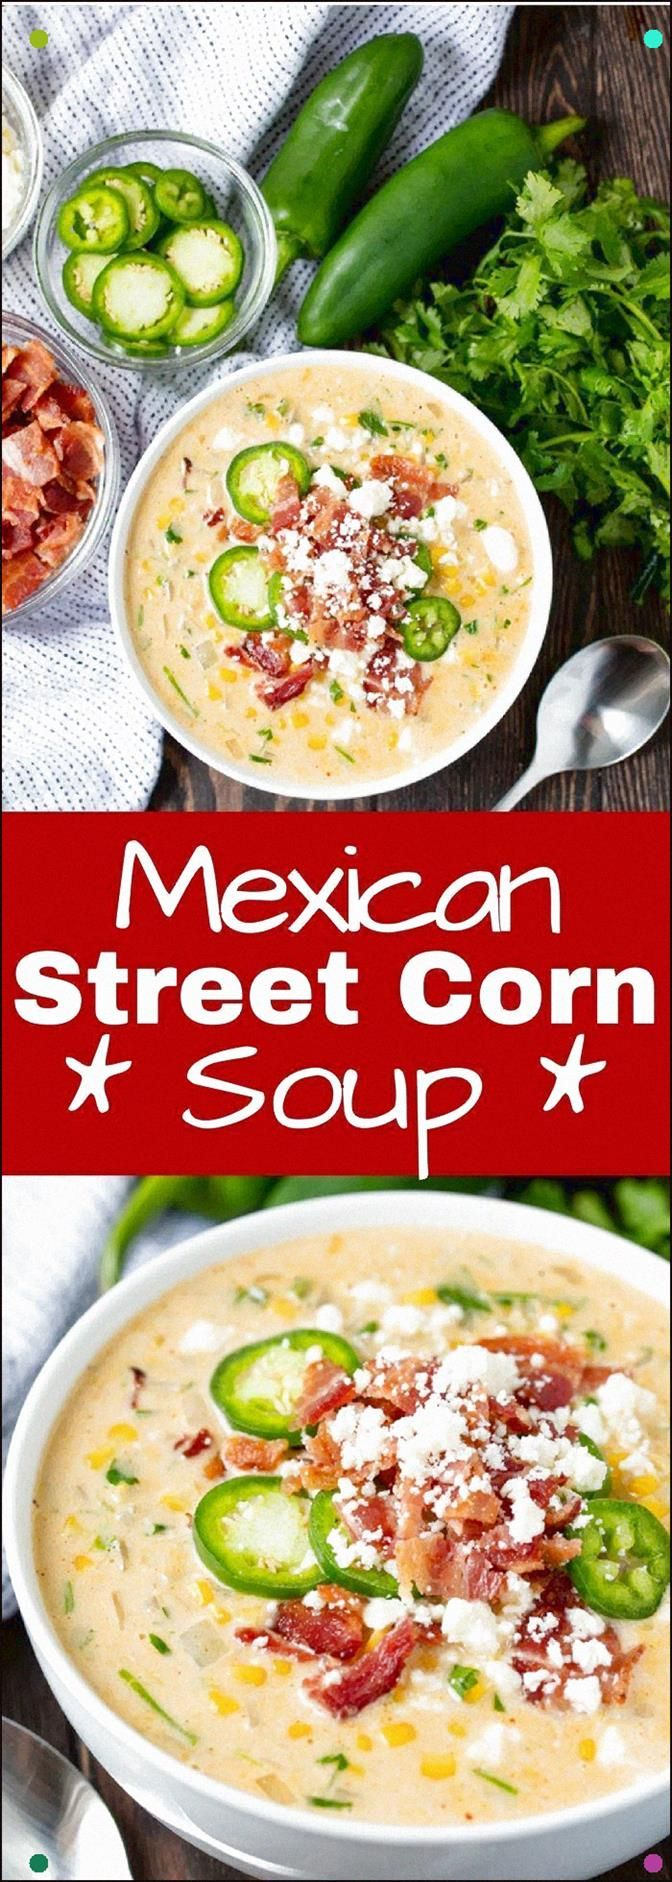 This Mexican Street Corn Soup Has All The Flavors You Love From Mexican Street Corn All Bundled Up Into One Comfort Food Soup That Is To Die For #Thestayathomechef #Mexicanstreetcornsoup #Souprecipe #Comfortfood #Fallrecipes #mexicanstreetcorn